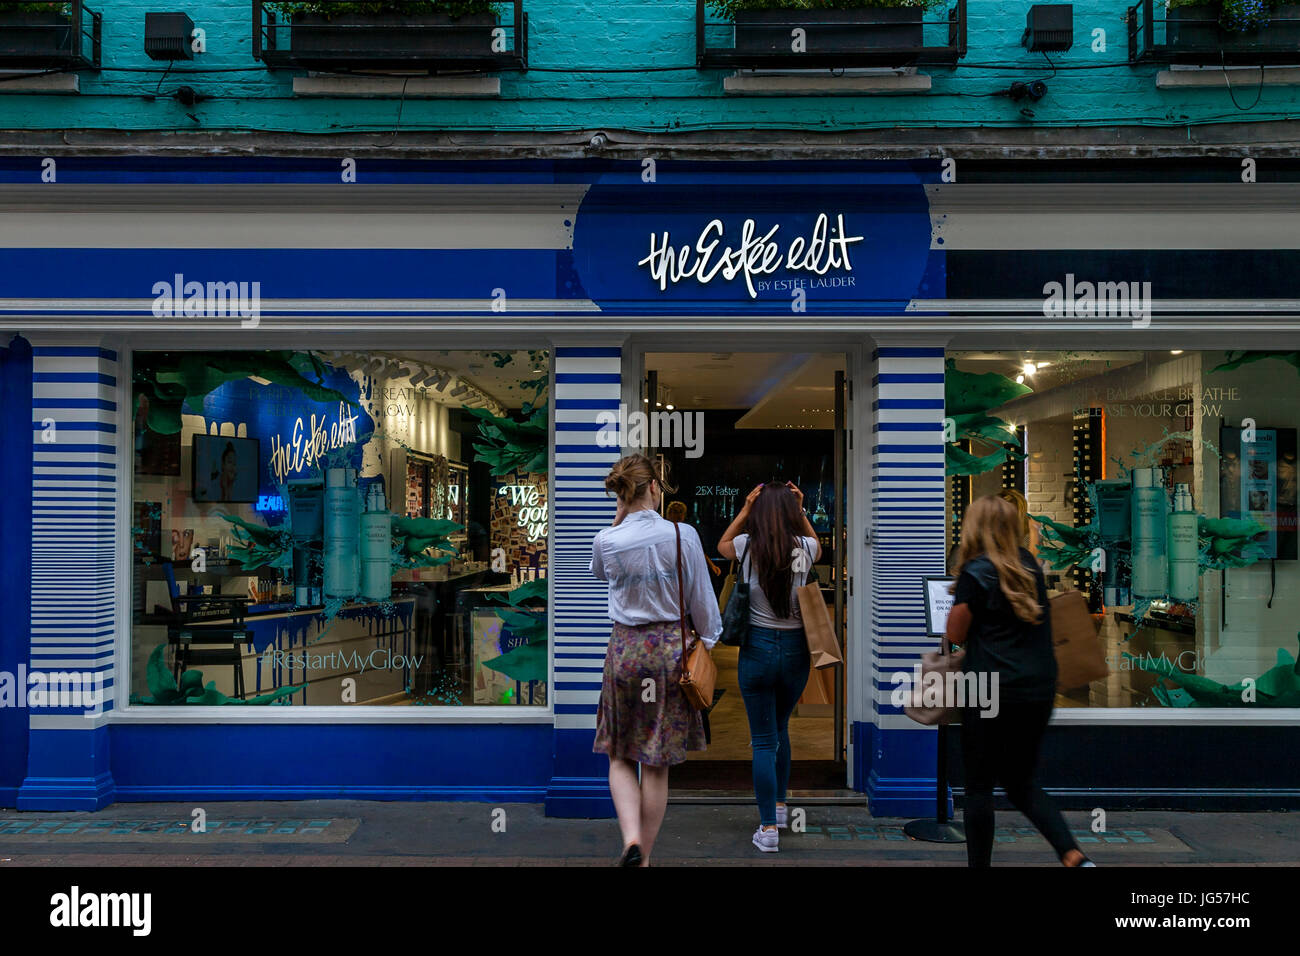 The Estee Edit Store, Carnaby Street, London, UK - Stock Image